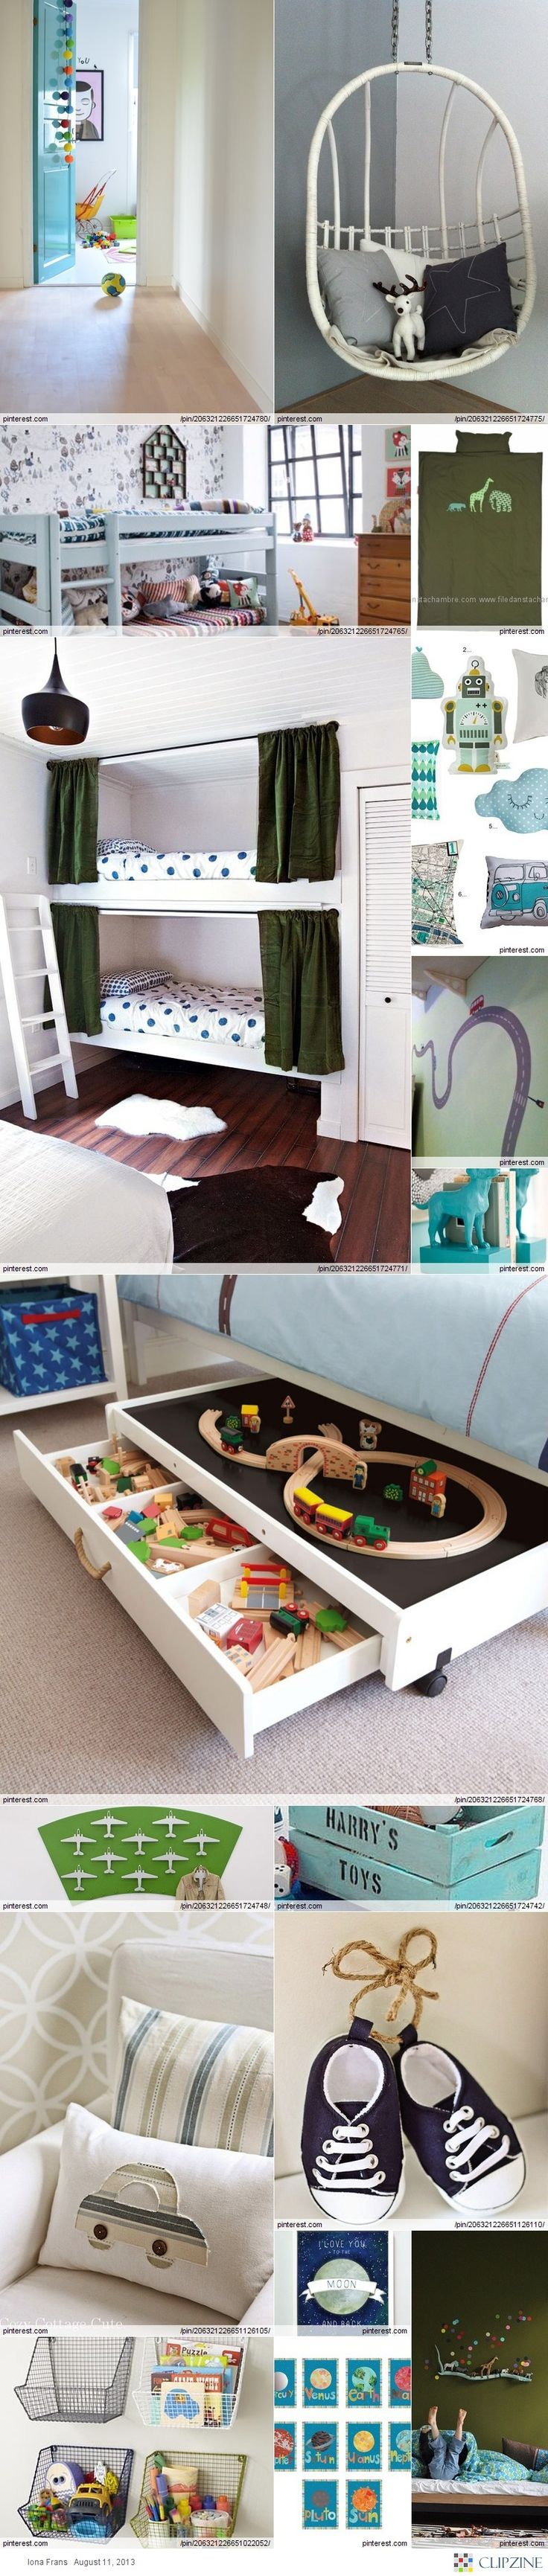 little boys room- I really like the under the bed train storage. We should look for something like that for Ethan's Thomas & Dinosaur Train toys.